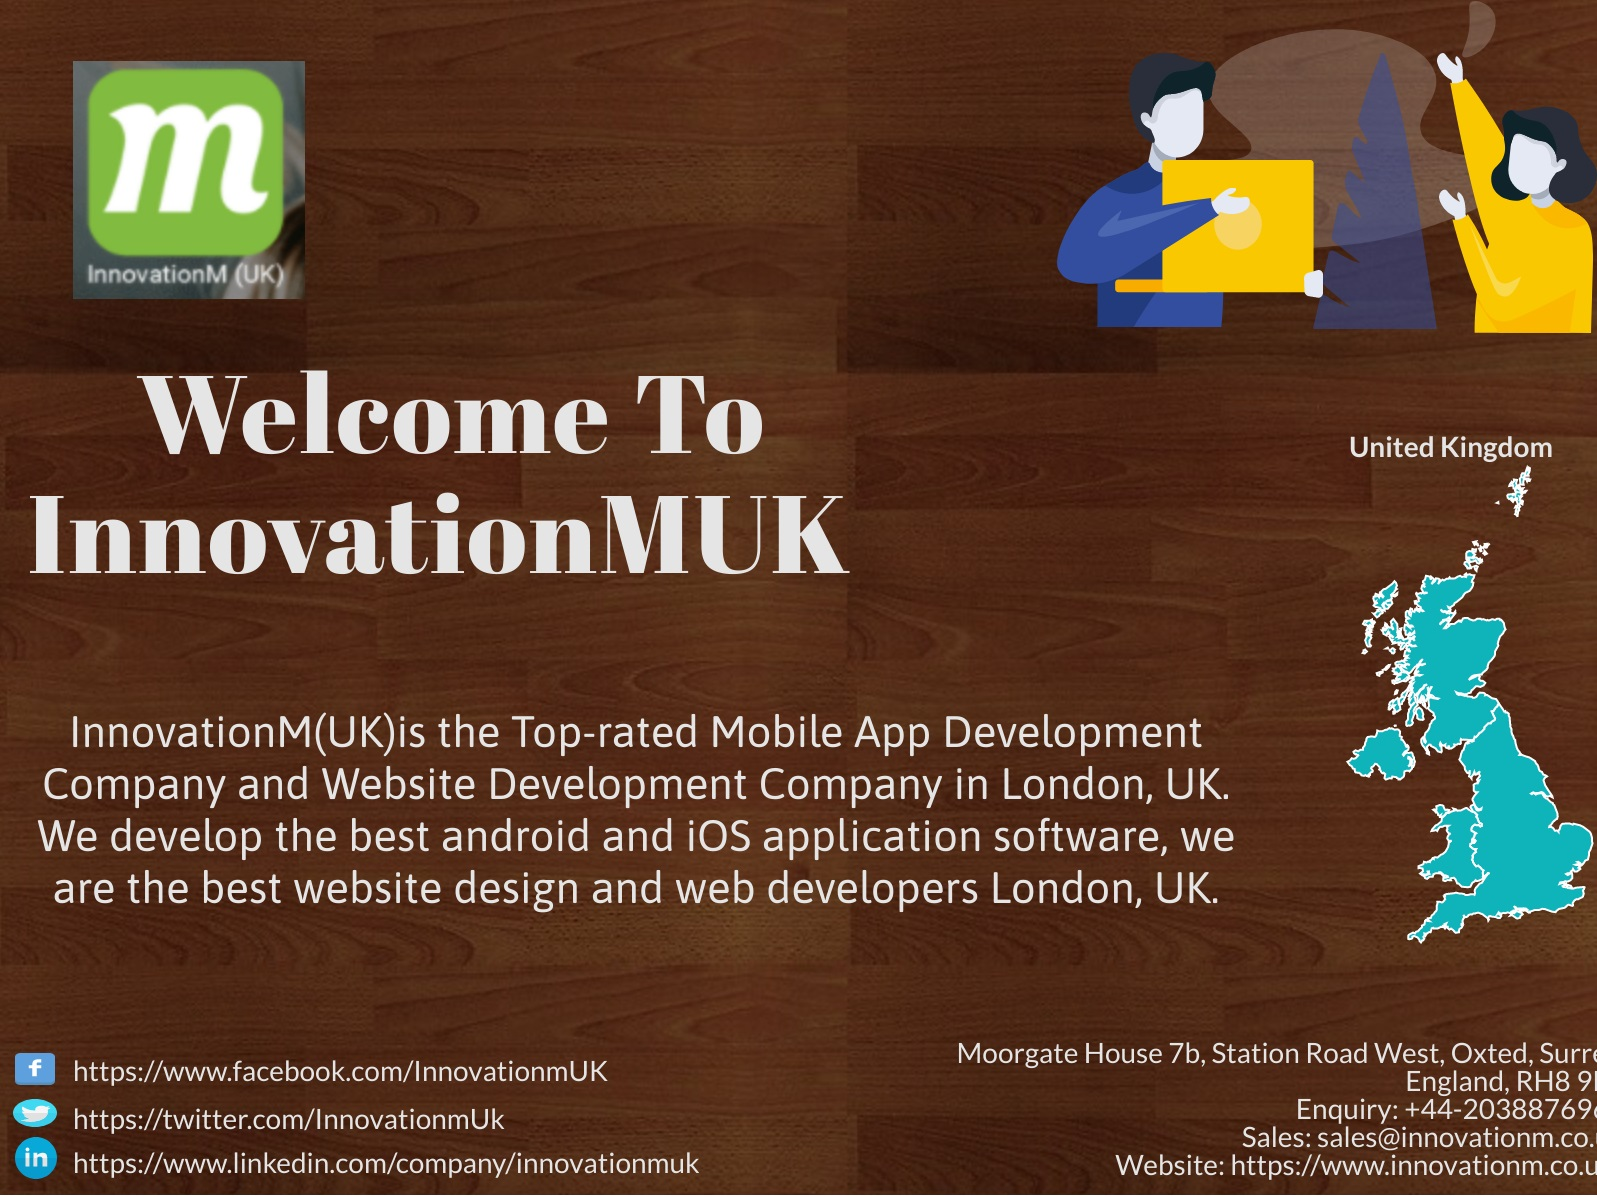 InnovationMUK is the best app design company in london and app development oxford, UK.